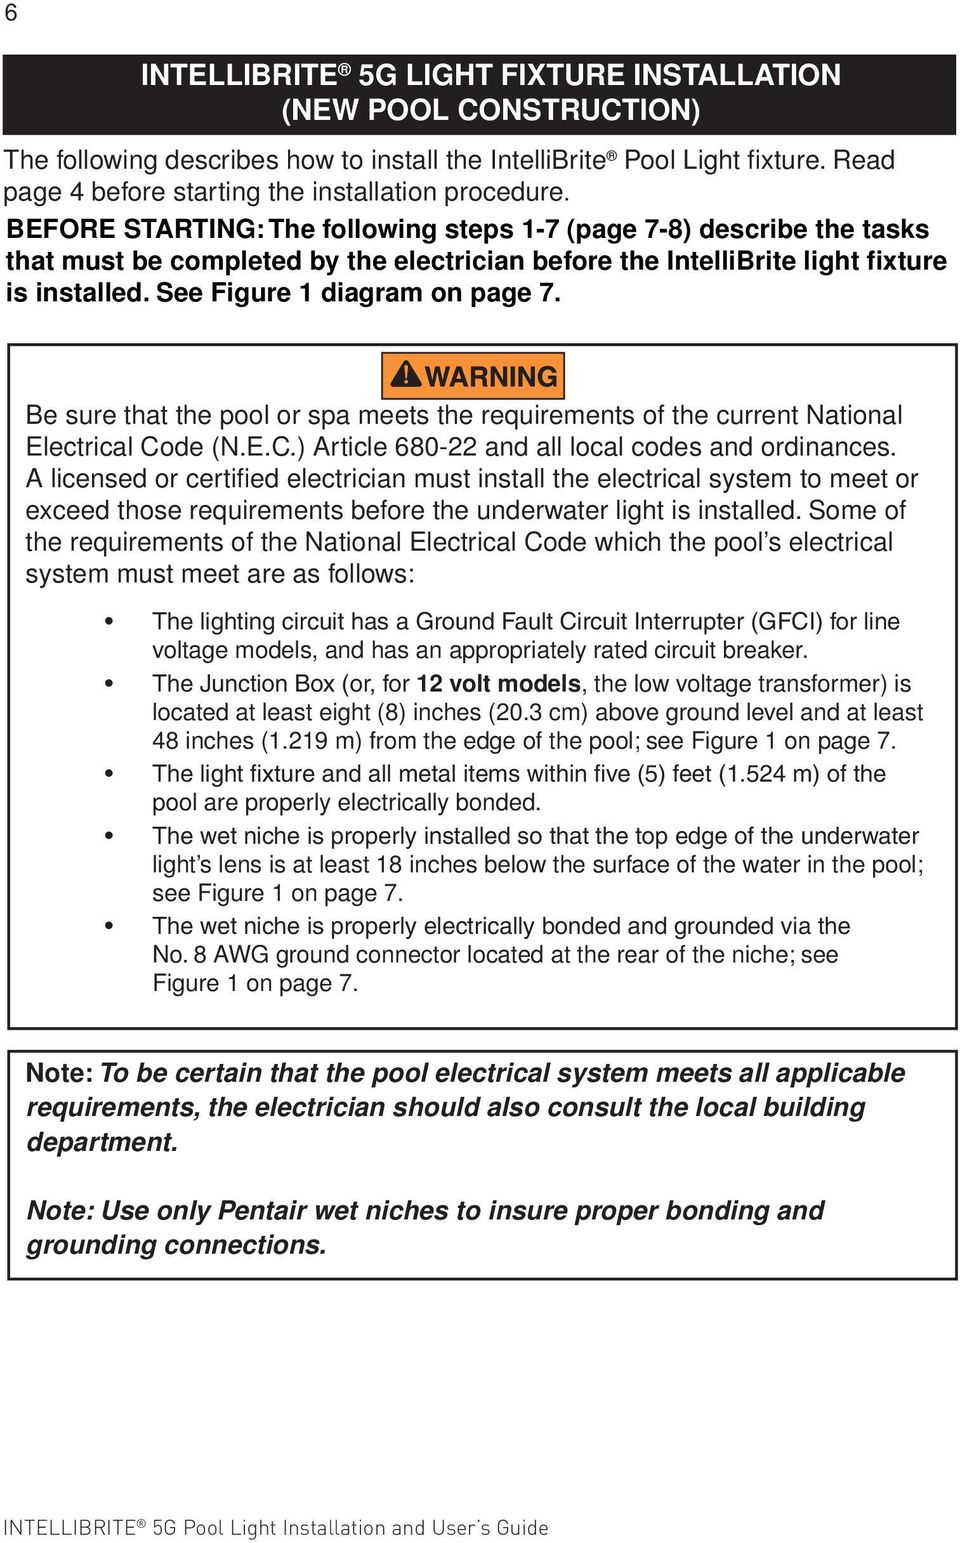 Intellibrite 5g Color Led Pool Light Pdf Swimmingpoolwiringnec Swimming Wiring Nec Http Www Be Sure That The Or Spa Meets Requirements Of Current National Electrical Code